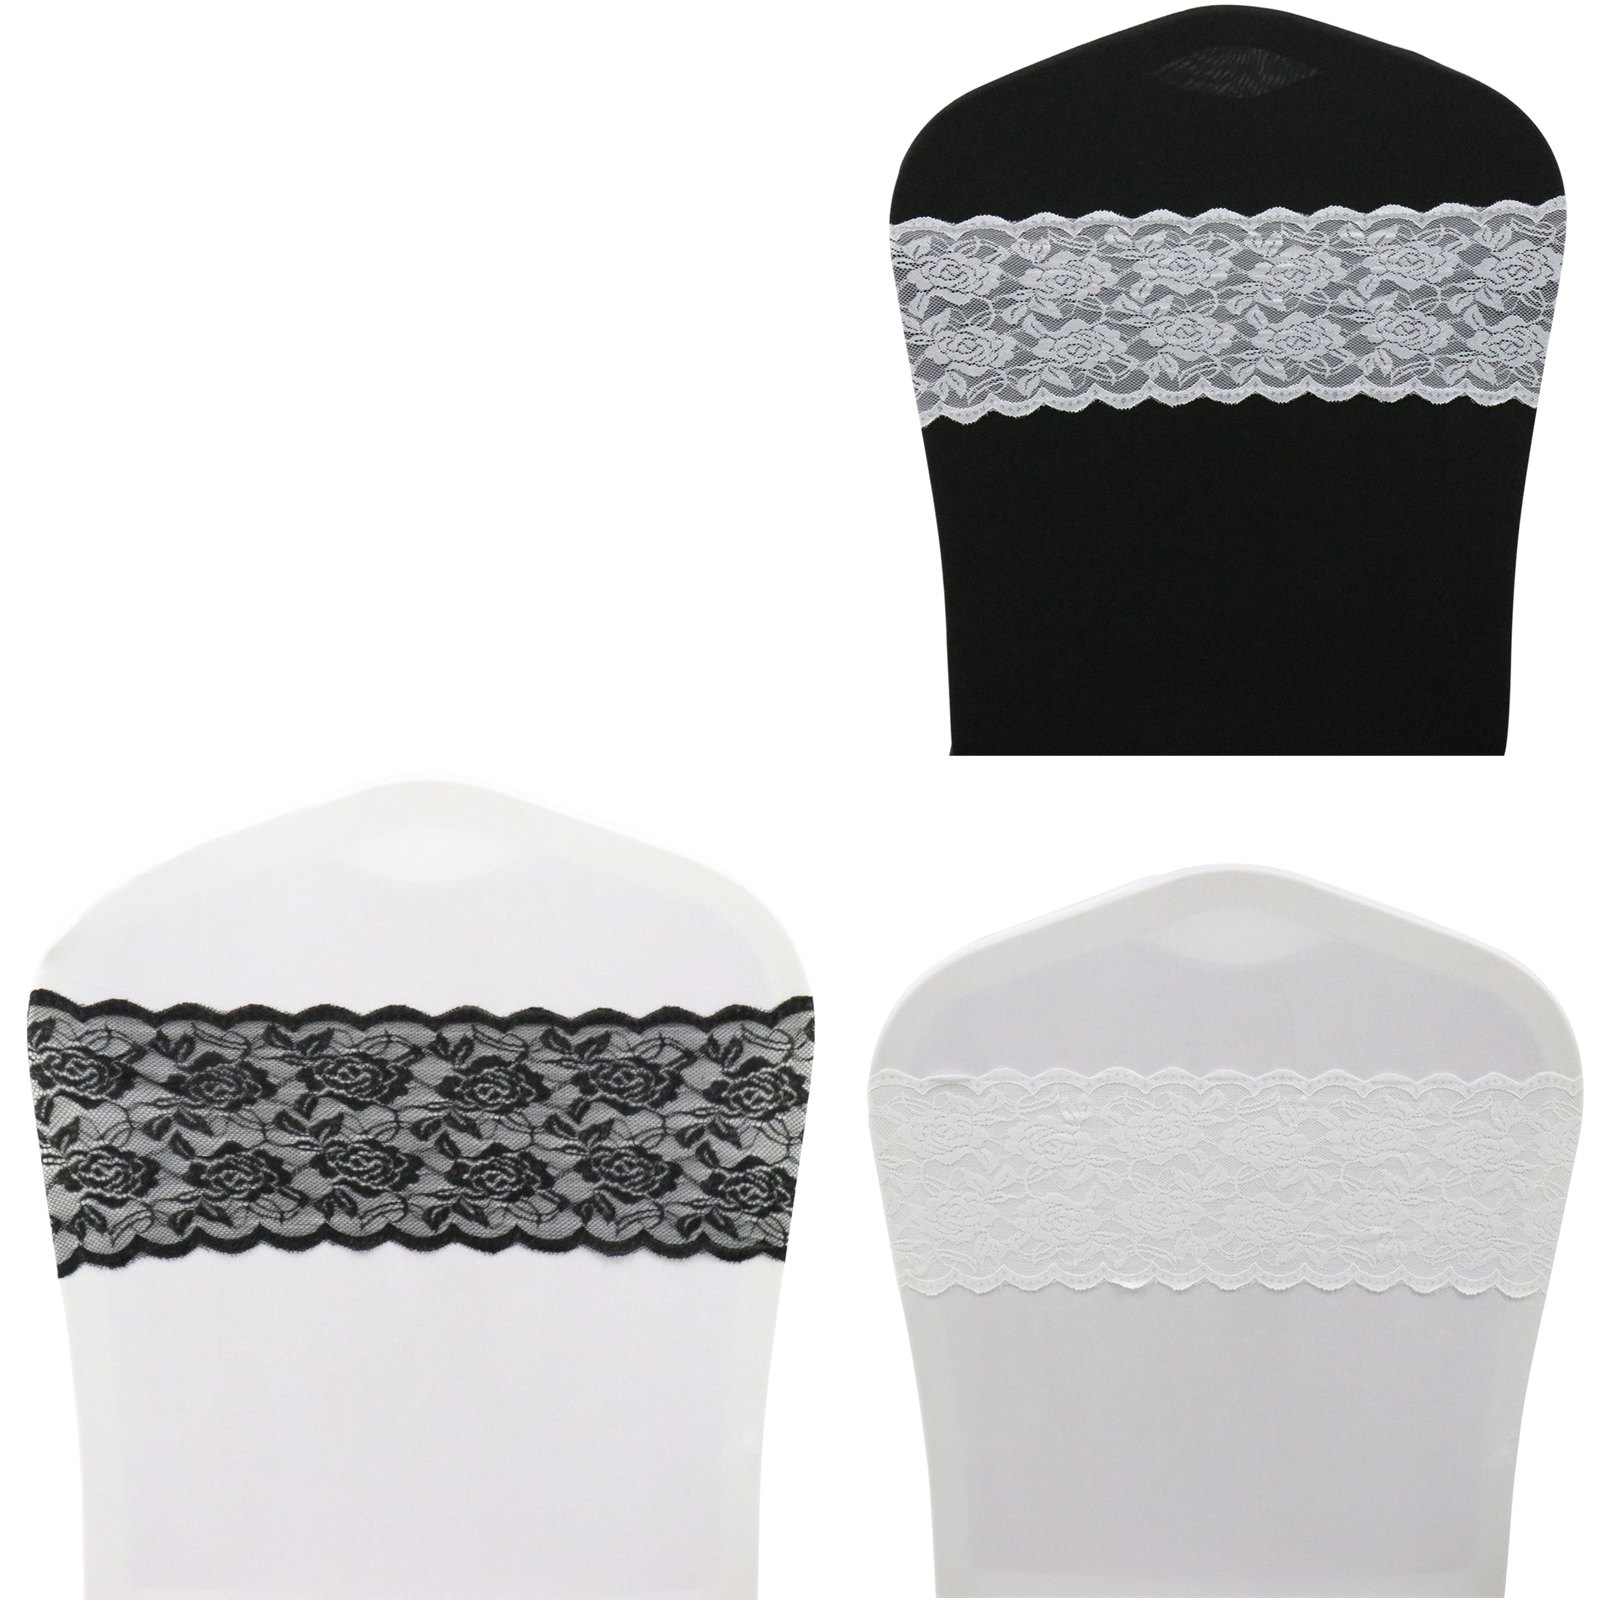 50pcs Wedding Chair Bands White Lace Chair Sashes Chair Ribbons Baby For Shower Birthday Wedding Party